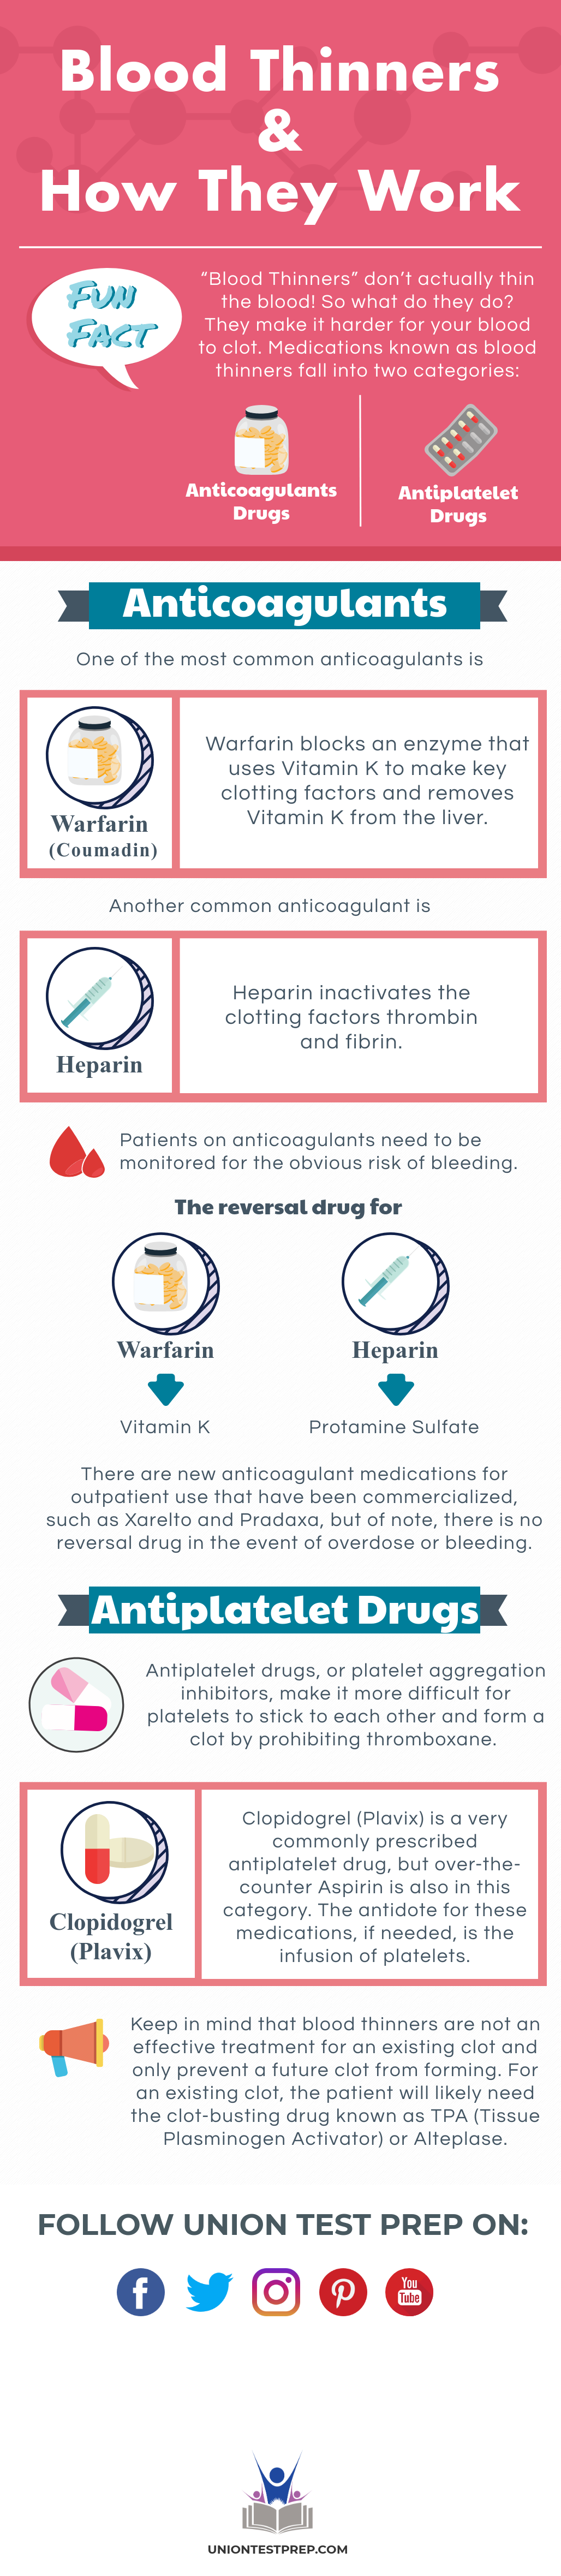 blood thinners and how they work